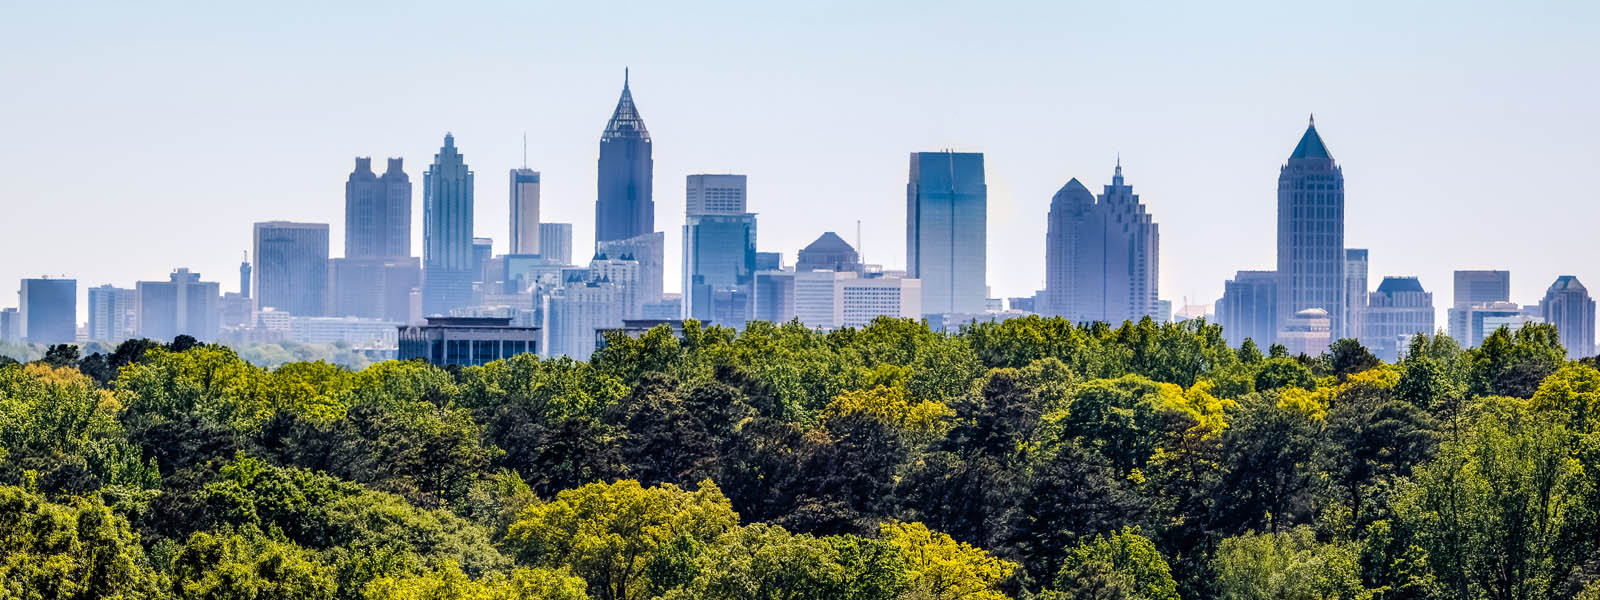 Atlanta's skyline from a distance with a tree line along the bottom of the image